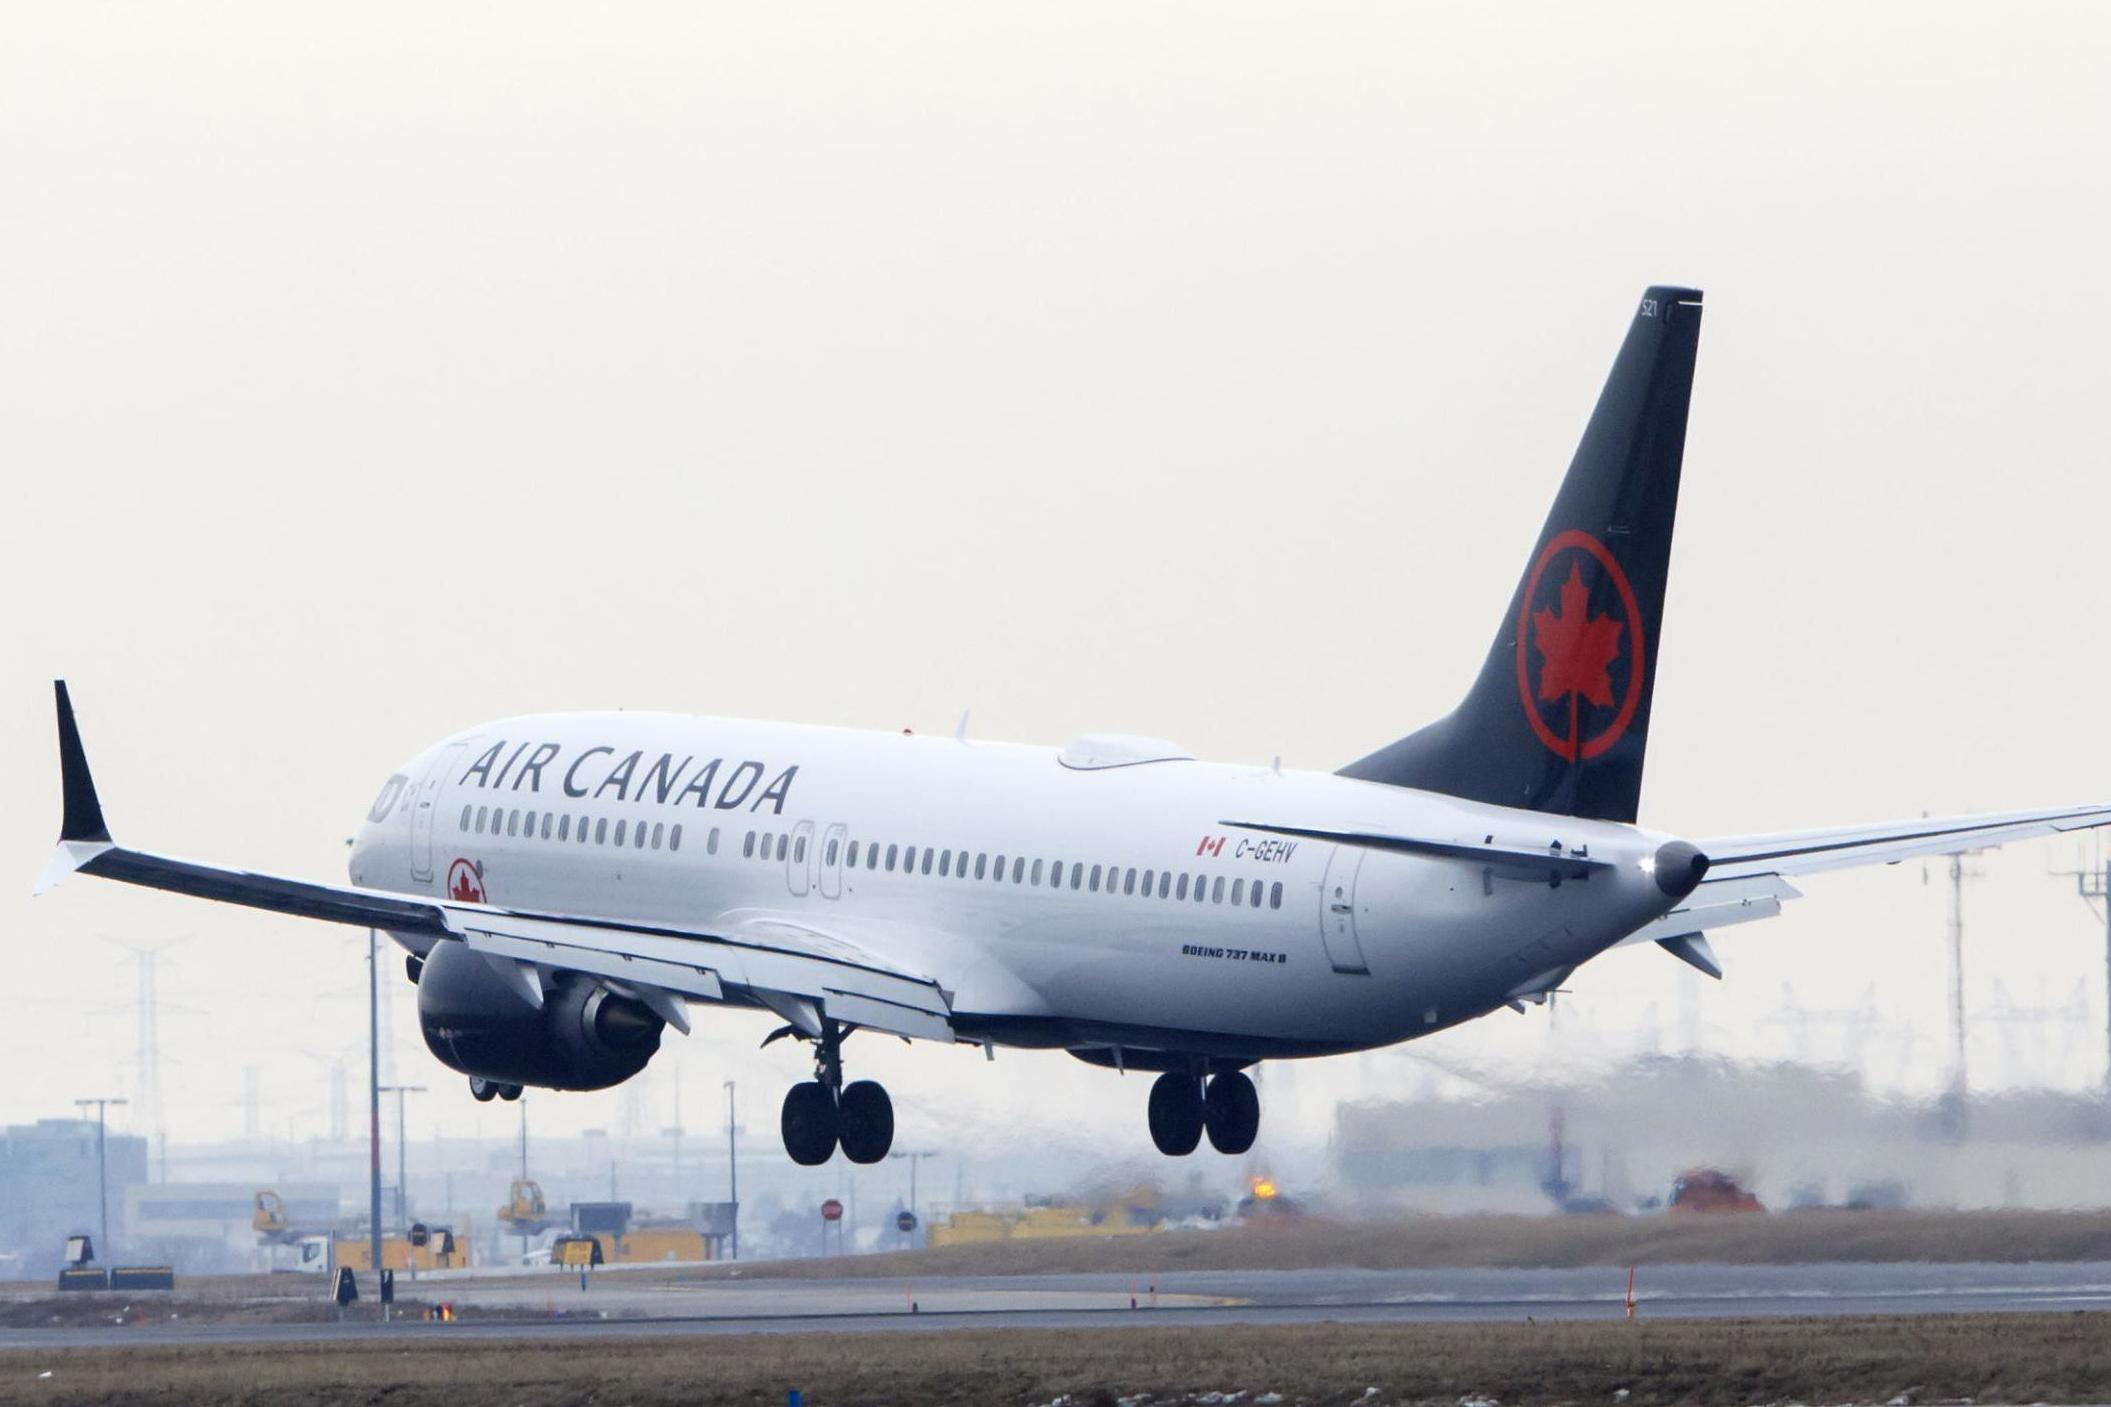 Air Canada to remove 'ladies and gentlemen' from onboard announcements